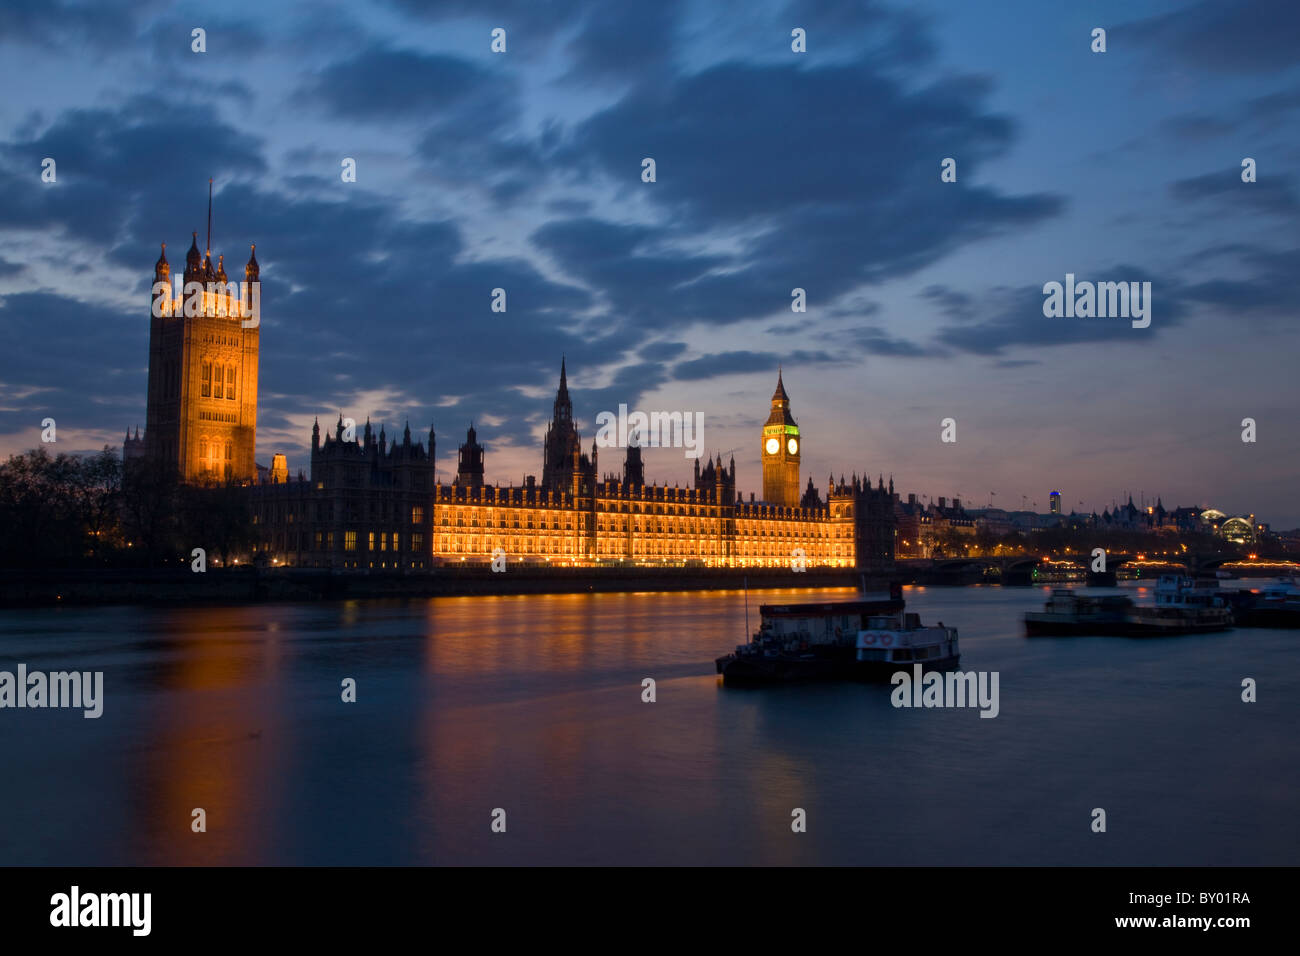 Houses of Parliament viewed from the South Bank at night - Stock Image